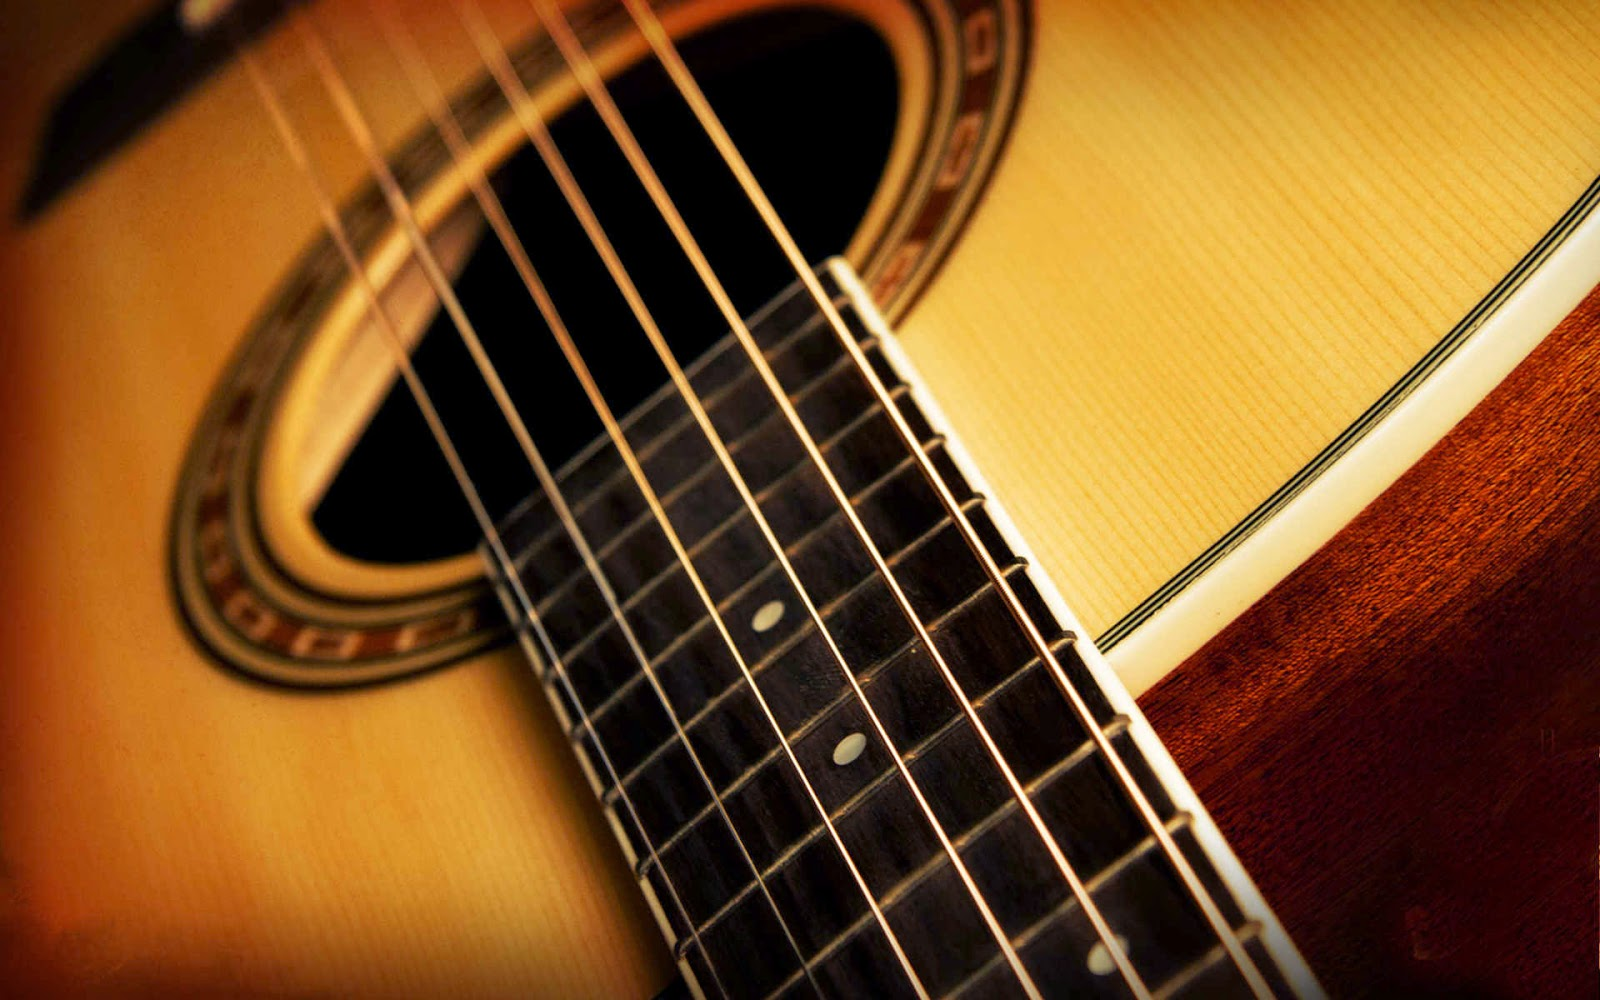 gibson acoustic guitar wallpaper submited images